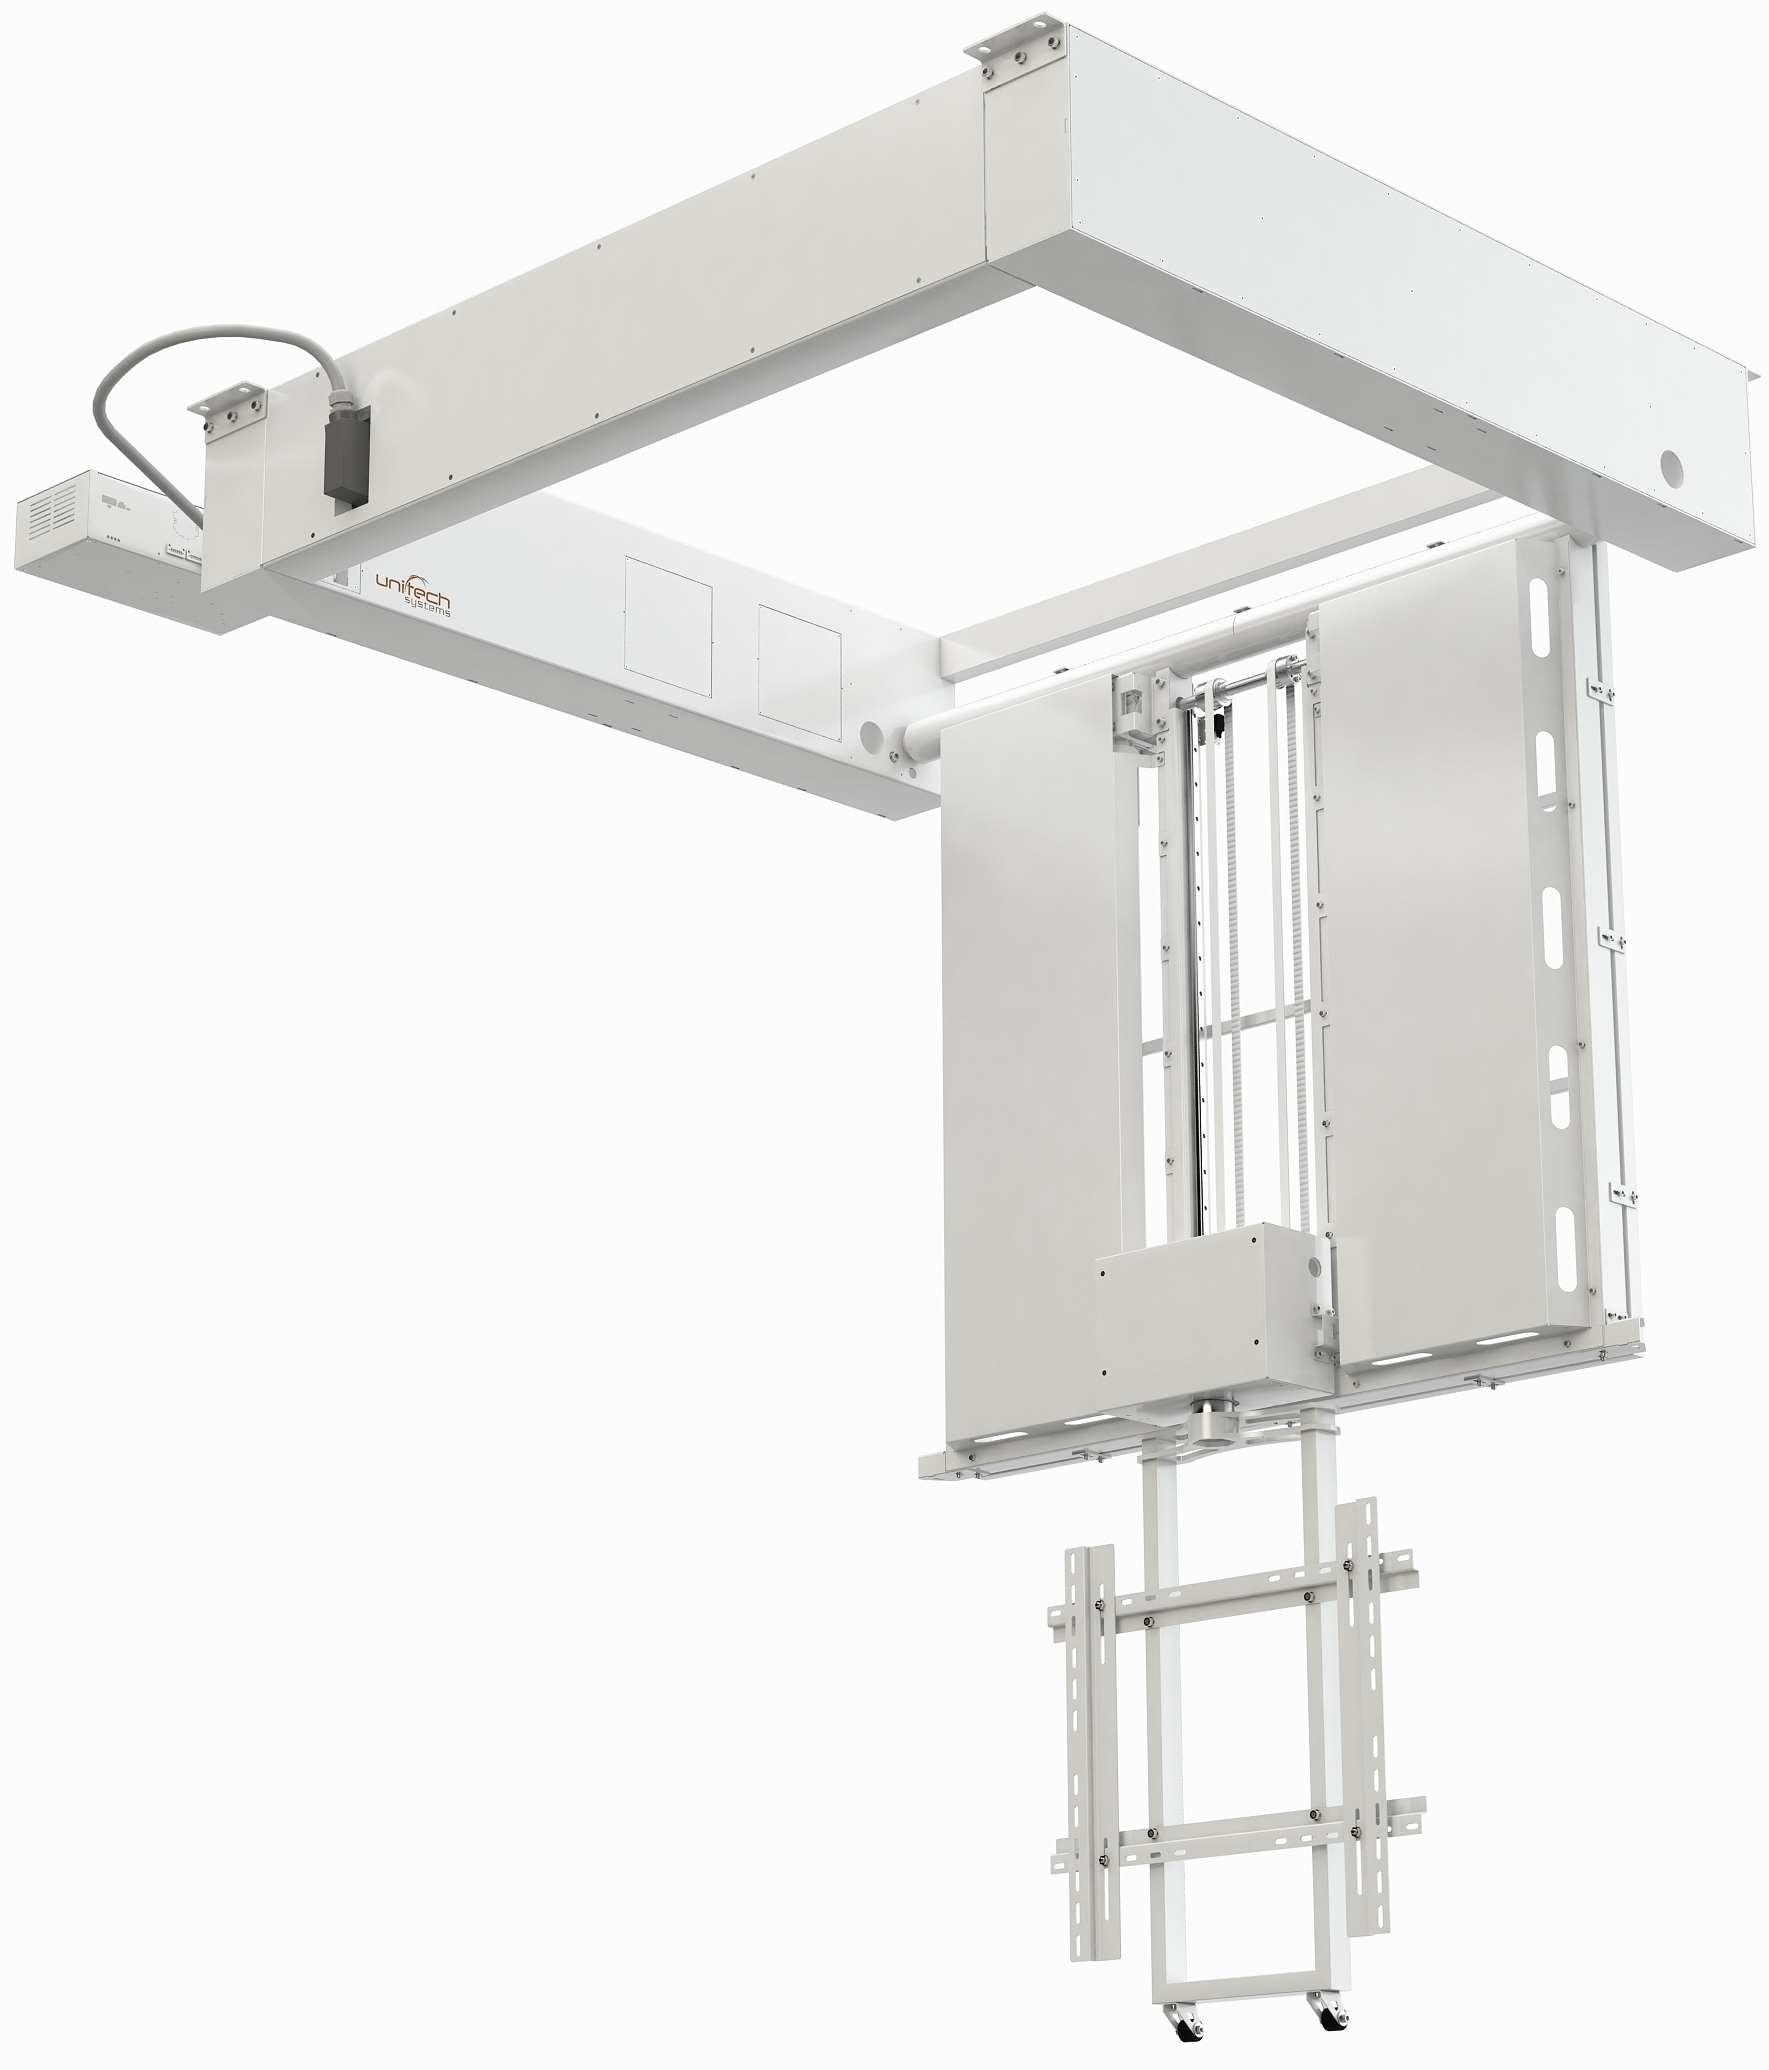 Flat Panel Ceiling Lift with vertical motion and rotation FPLCV2-42-50+R+LM+LOCK